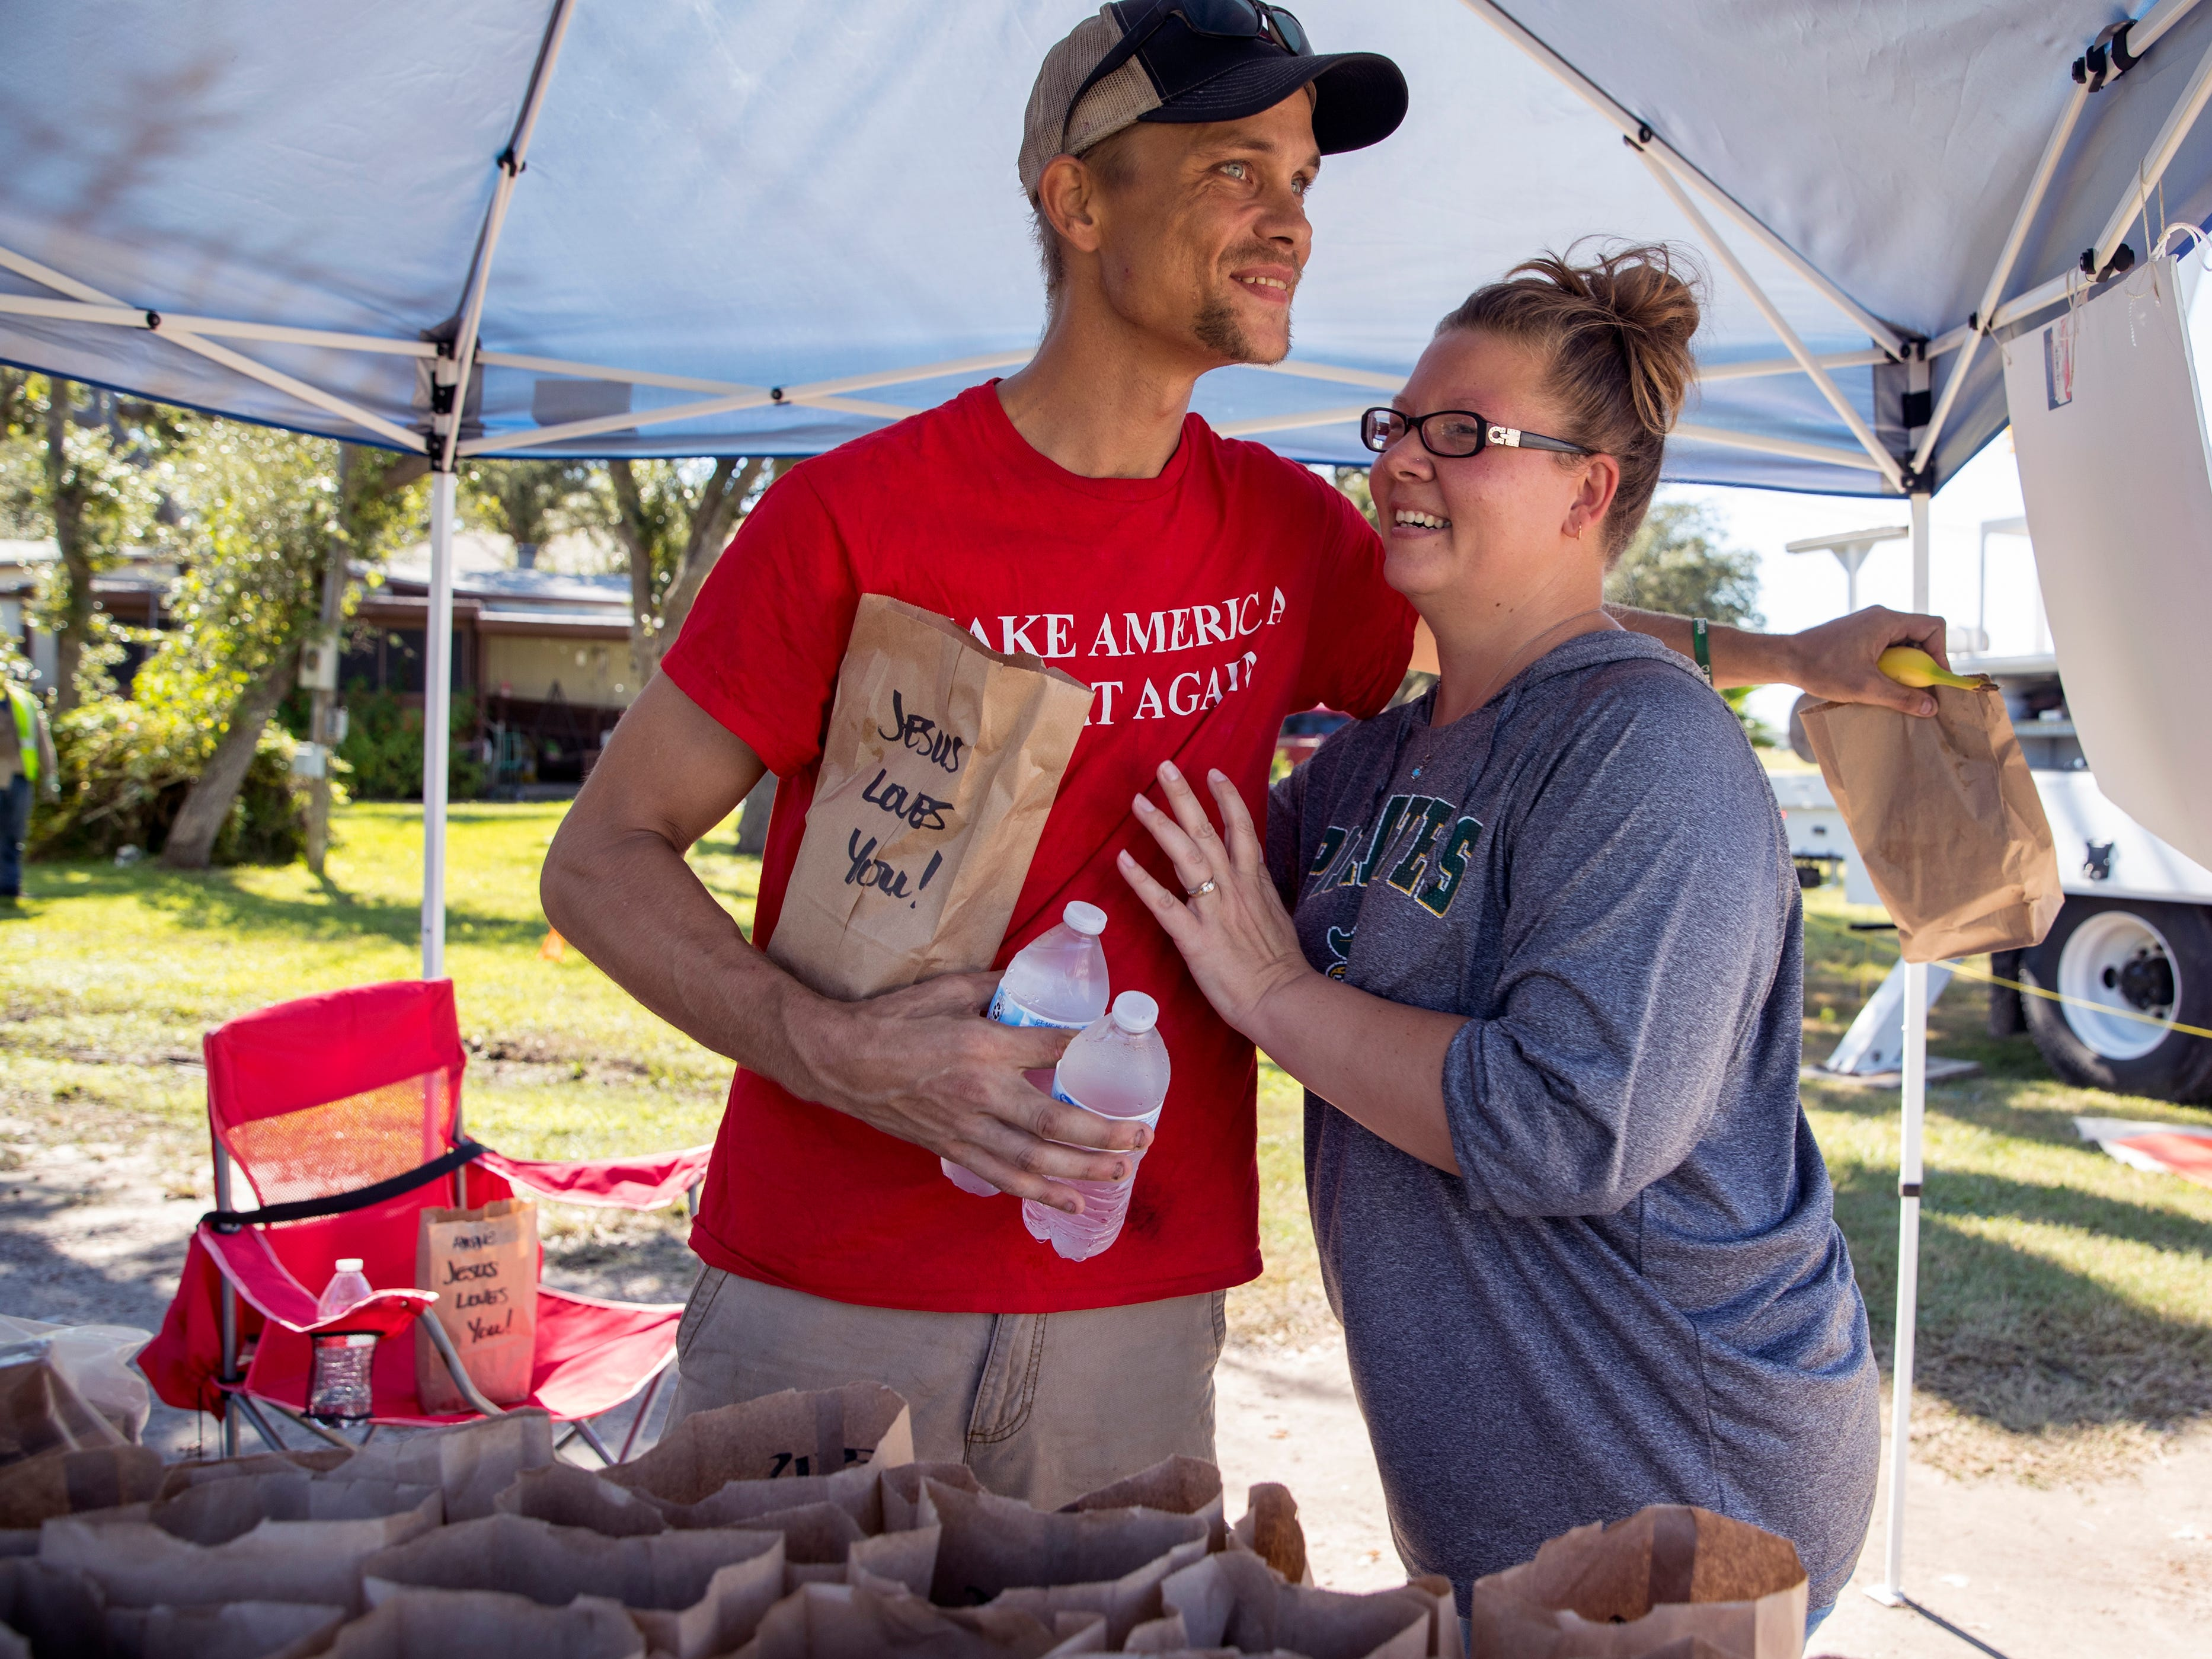 Justin Black (left) gives DeeDee Kilough a hug as he picks up sack lunches from Klough at her home in Rockport on on Monday, October 29, 2018. It is the second time she has given away lunches and said it was a way for her to give back to the community. She posts the information on Facebook and flags down people in passing vehicles to give the lunches away.